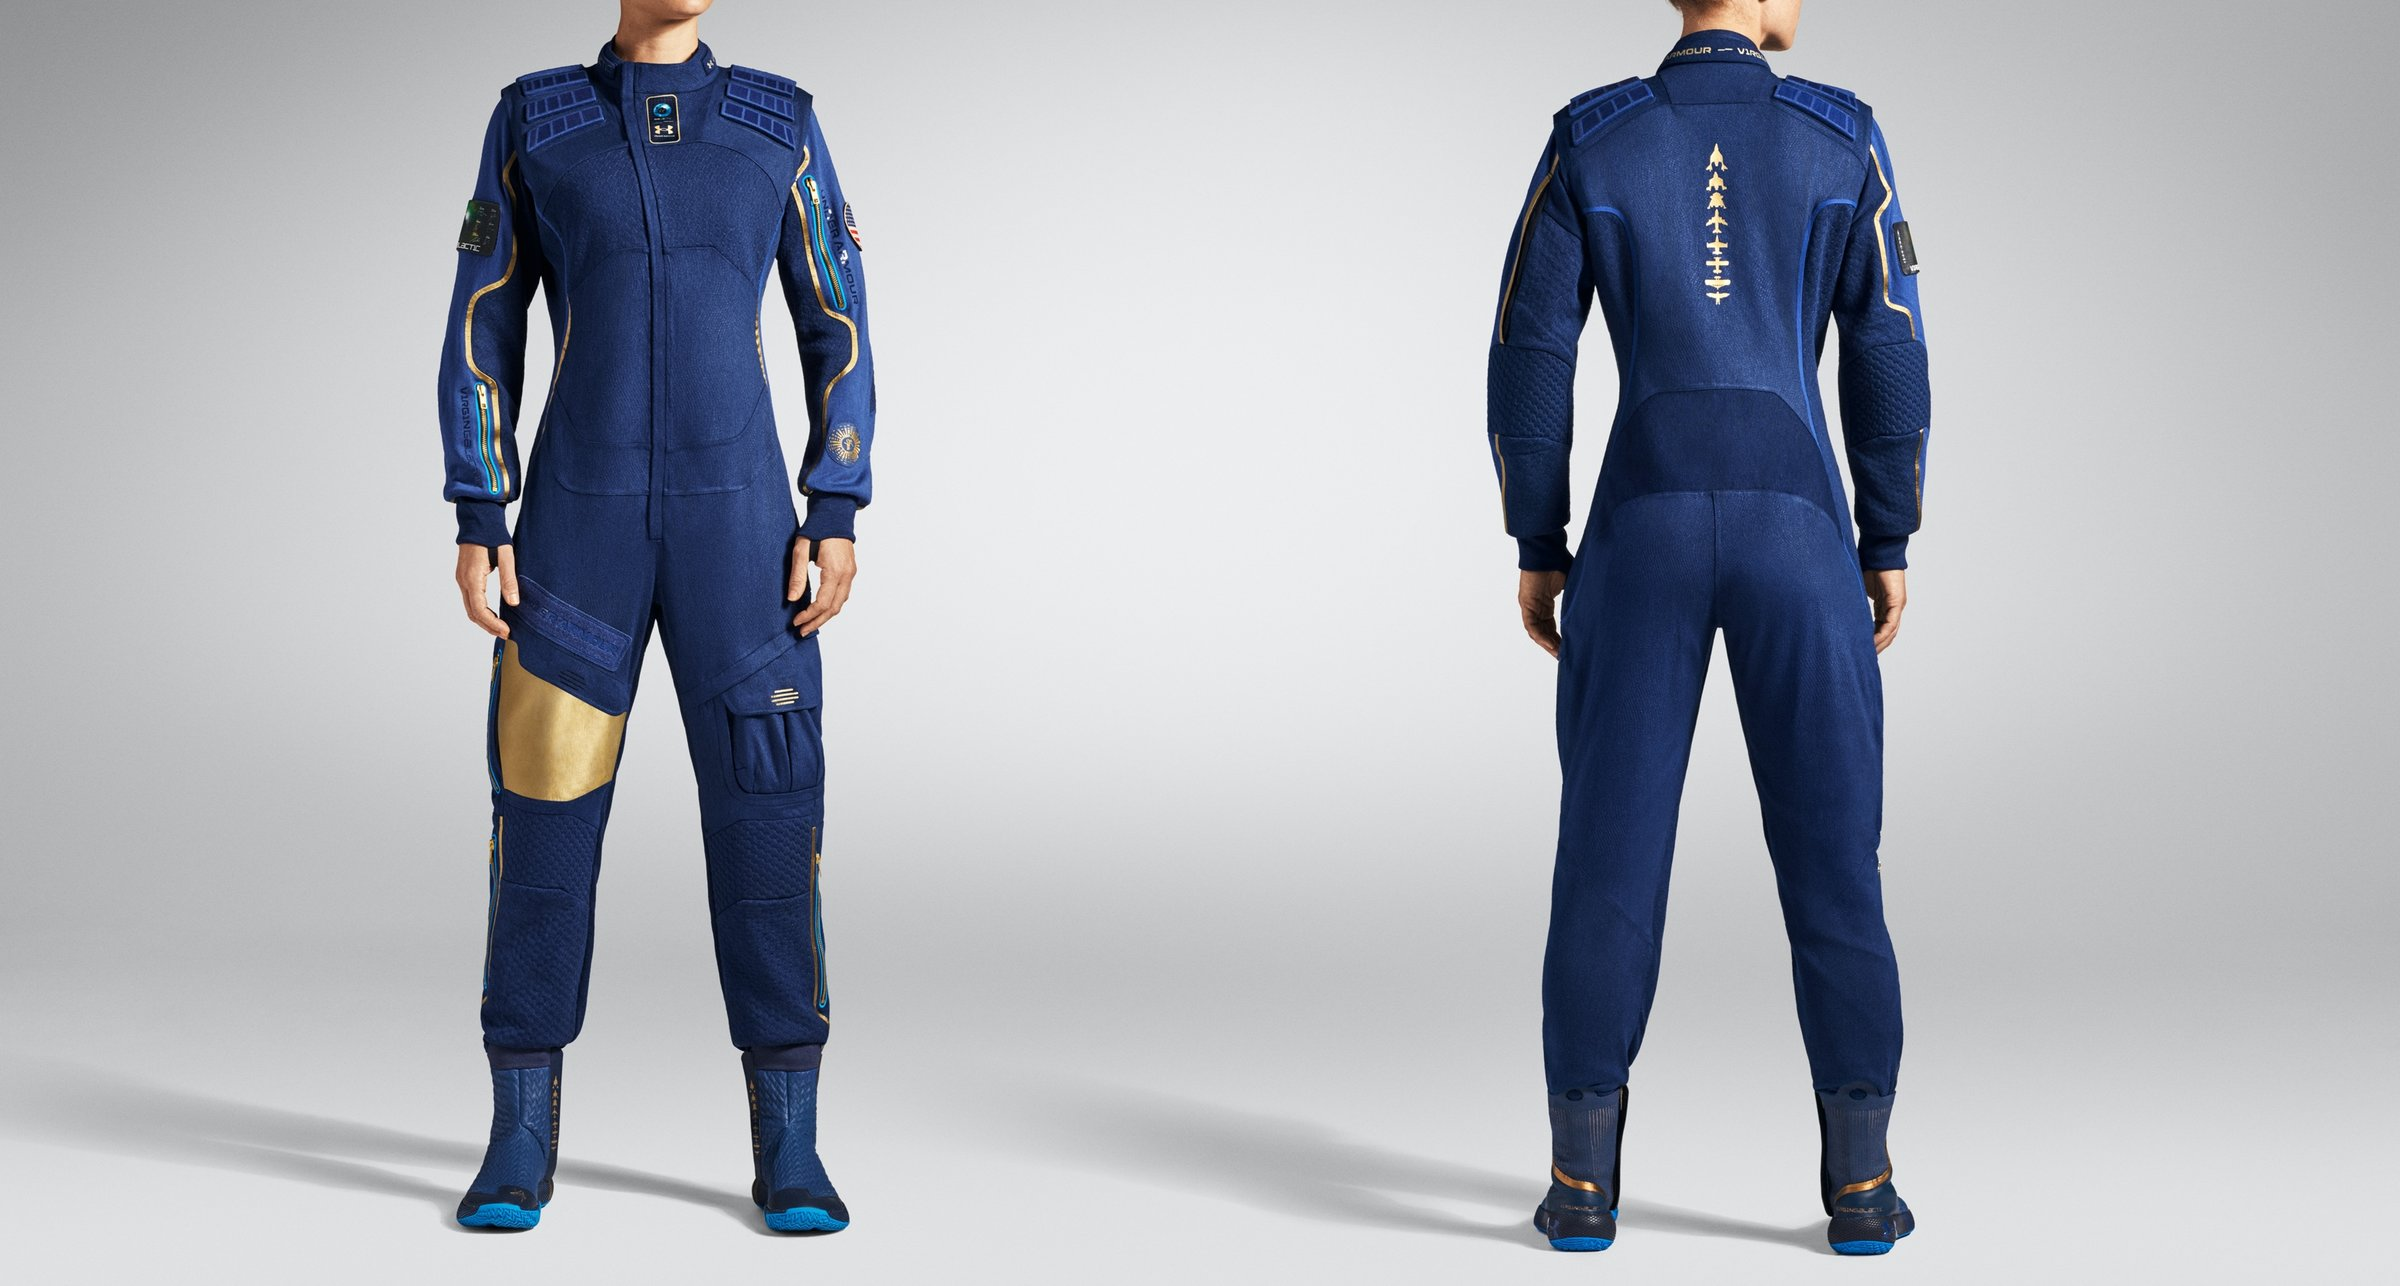 under armour is going to space